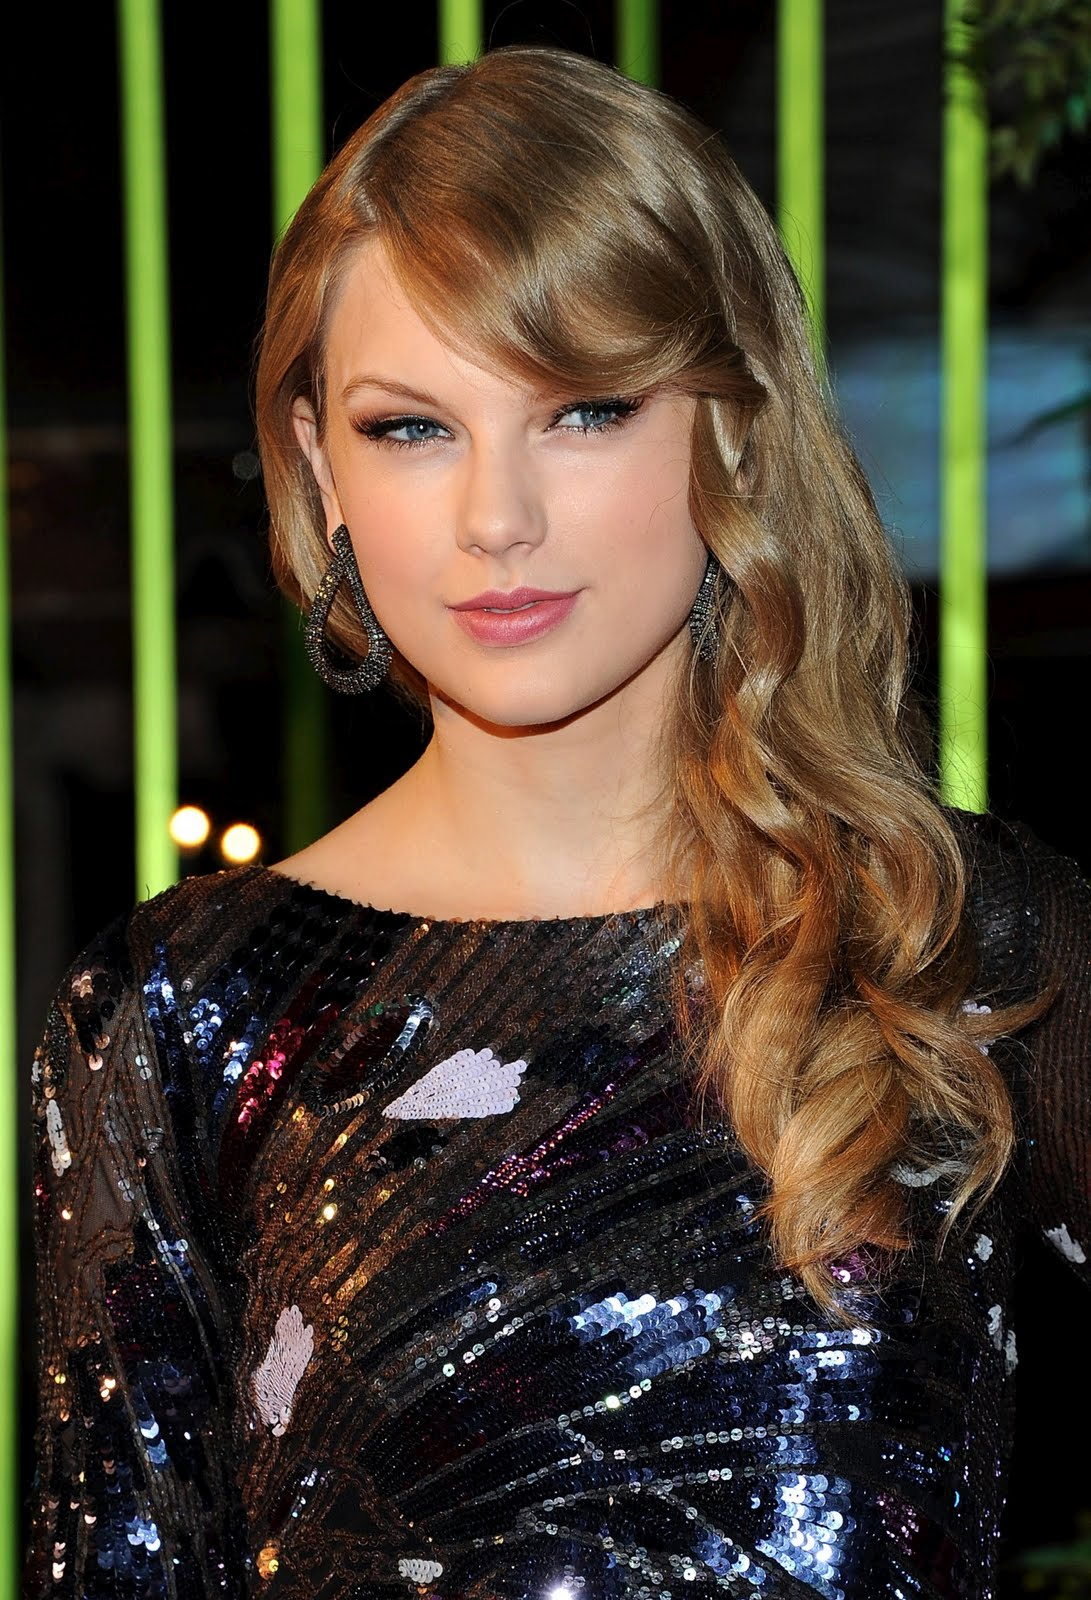 http://4.bp.blogspot.com/-GUWt5SxNm9w/TrtcSurEv3I/AAAAAAAAAkc/P2t-nzYaLss/s1600/Taylor-Swift-59th-BMI-Country-Awards.jpg